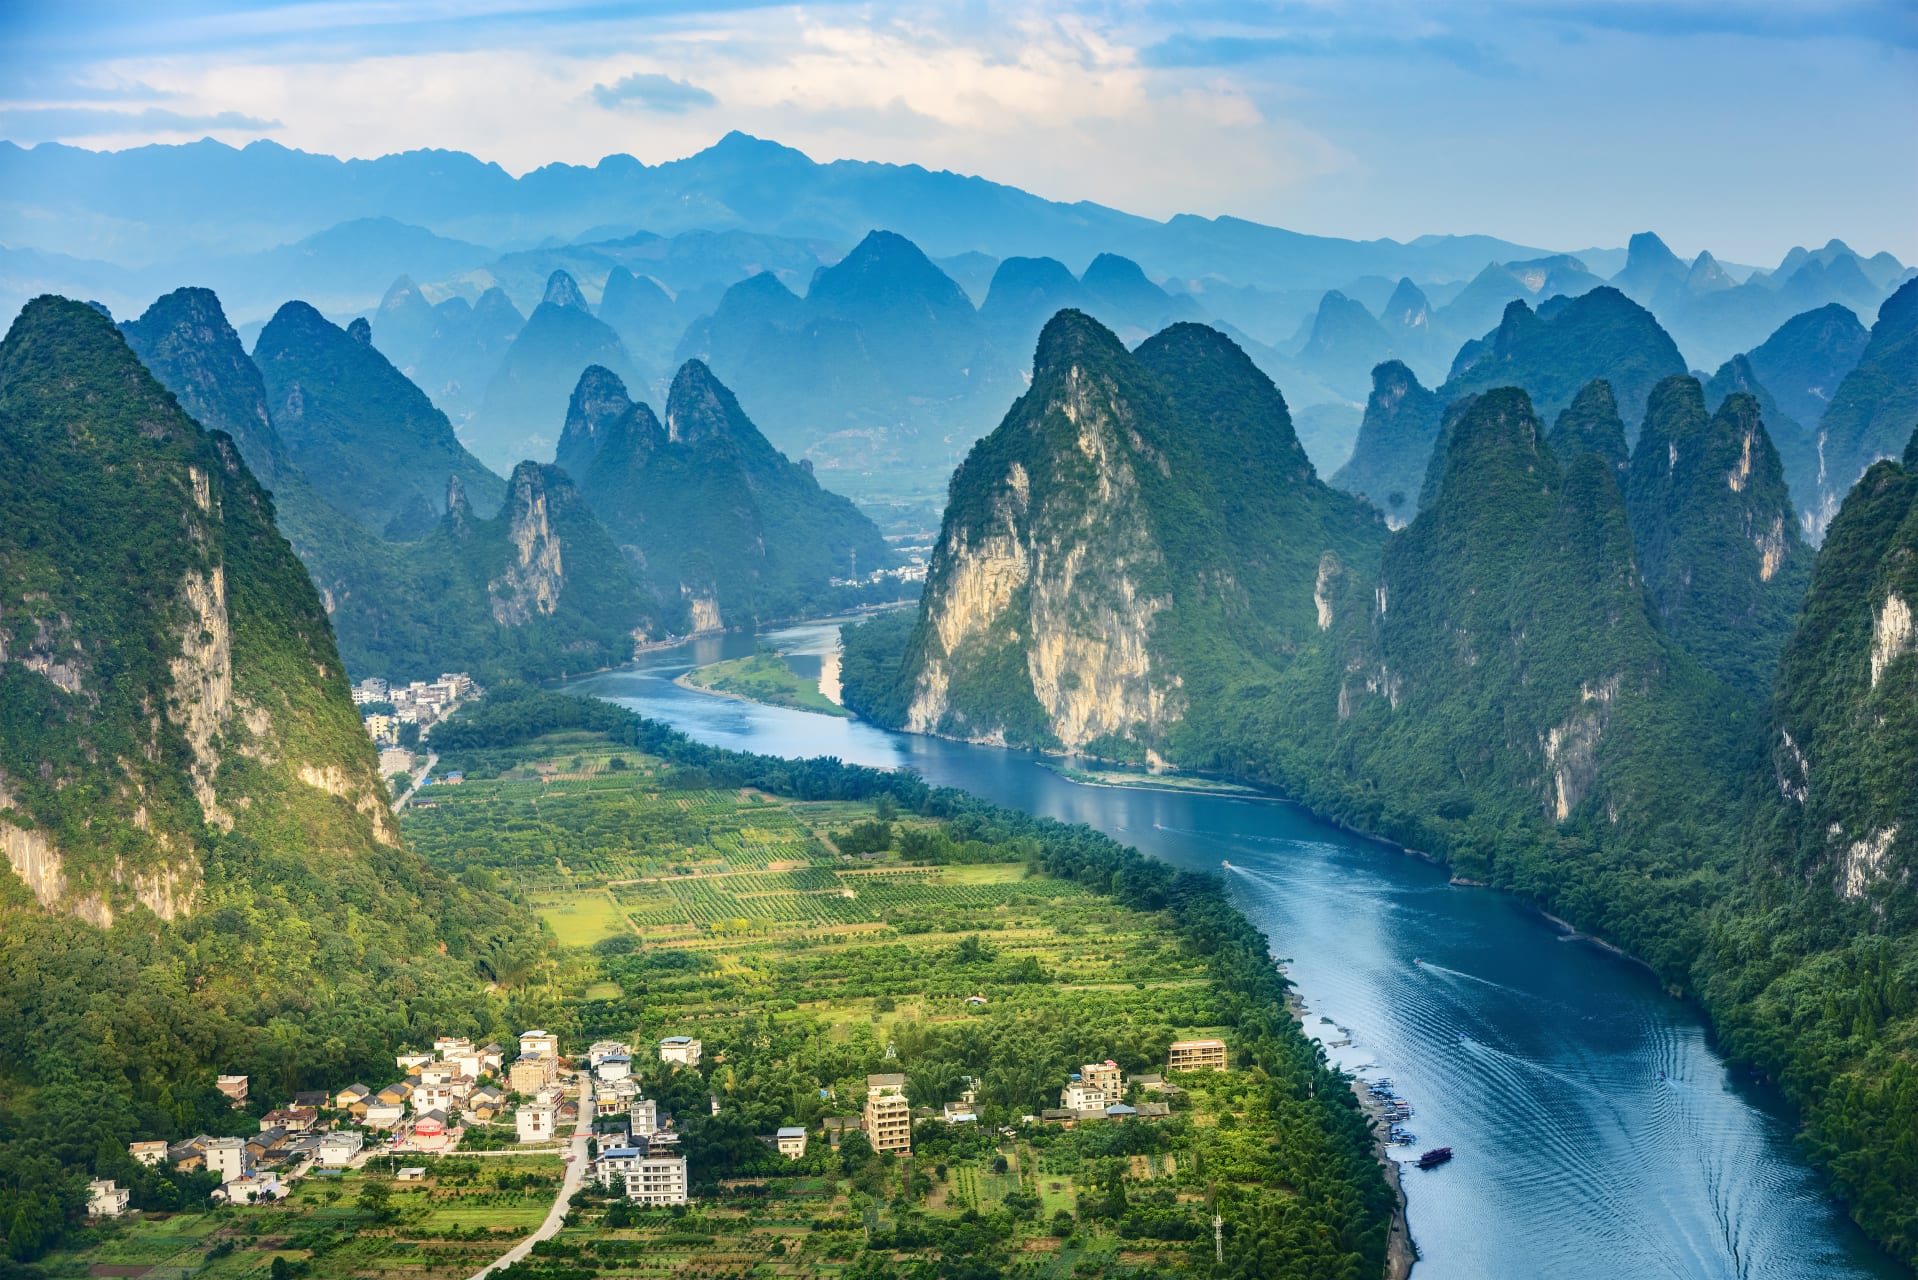 Guilin - Li River: Cruise Down One of Earth's Most Spectacular Wonders